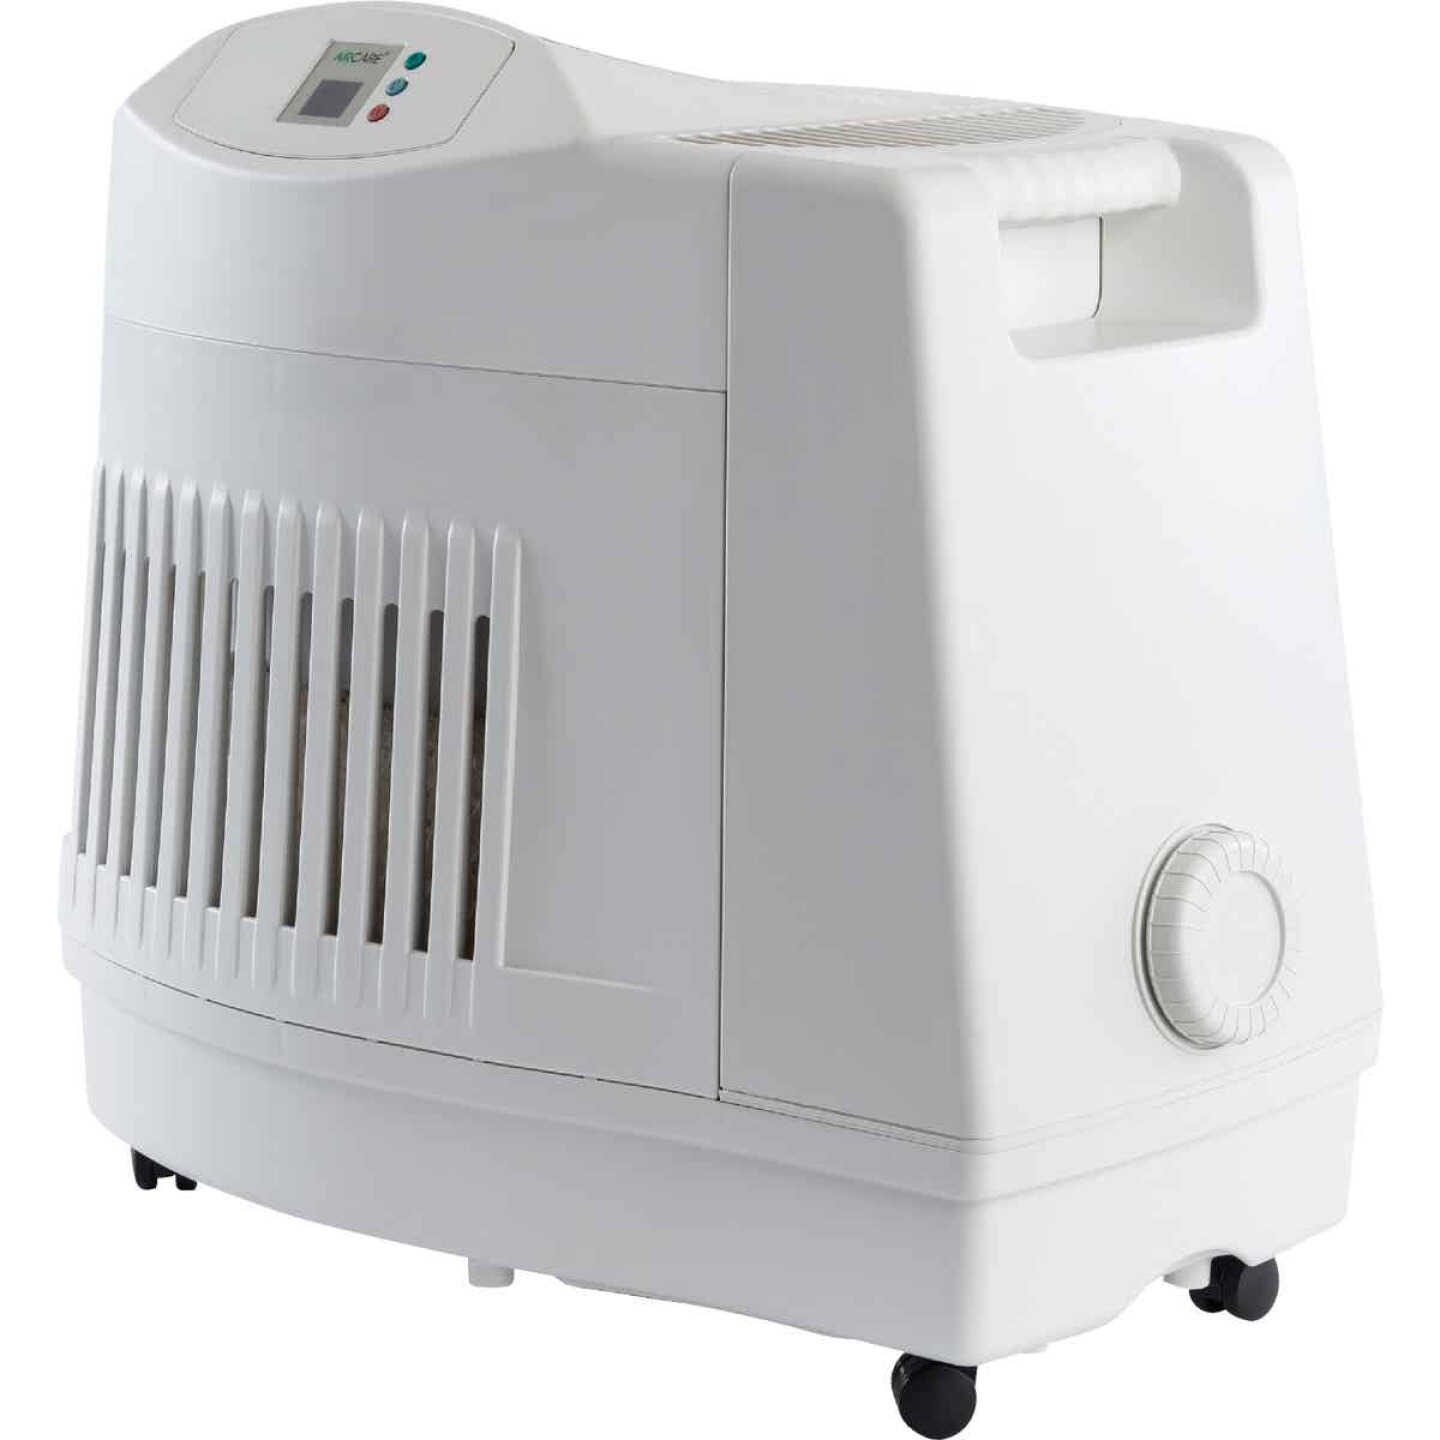 AirCare 3.6 Gal. Capacity 3600 Sq. Ft. Console Evaporative Humidifier Image 1